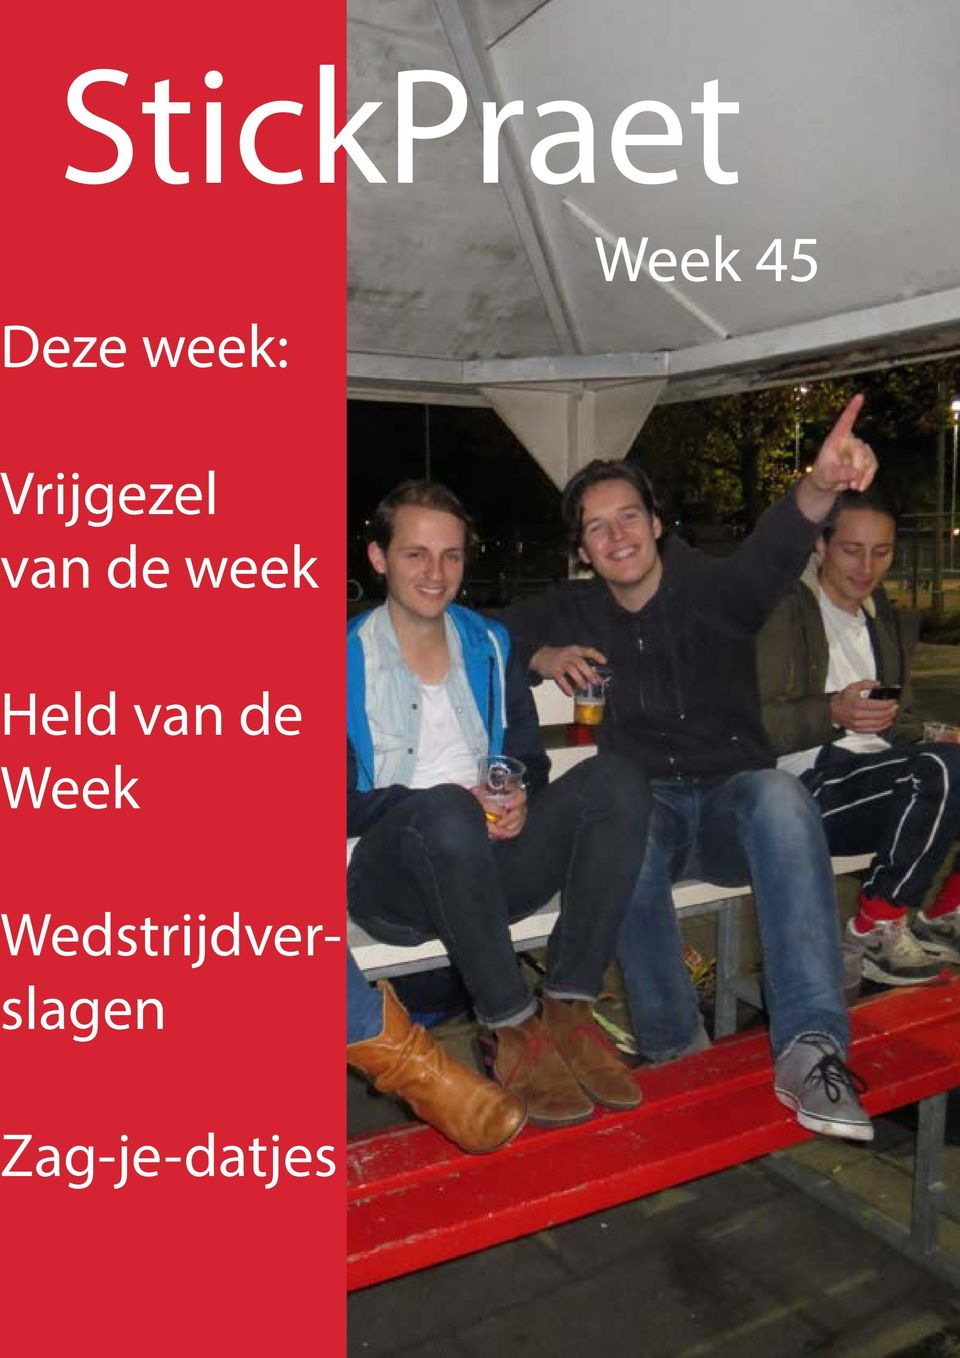 week Held van de Week